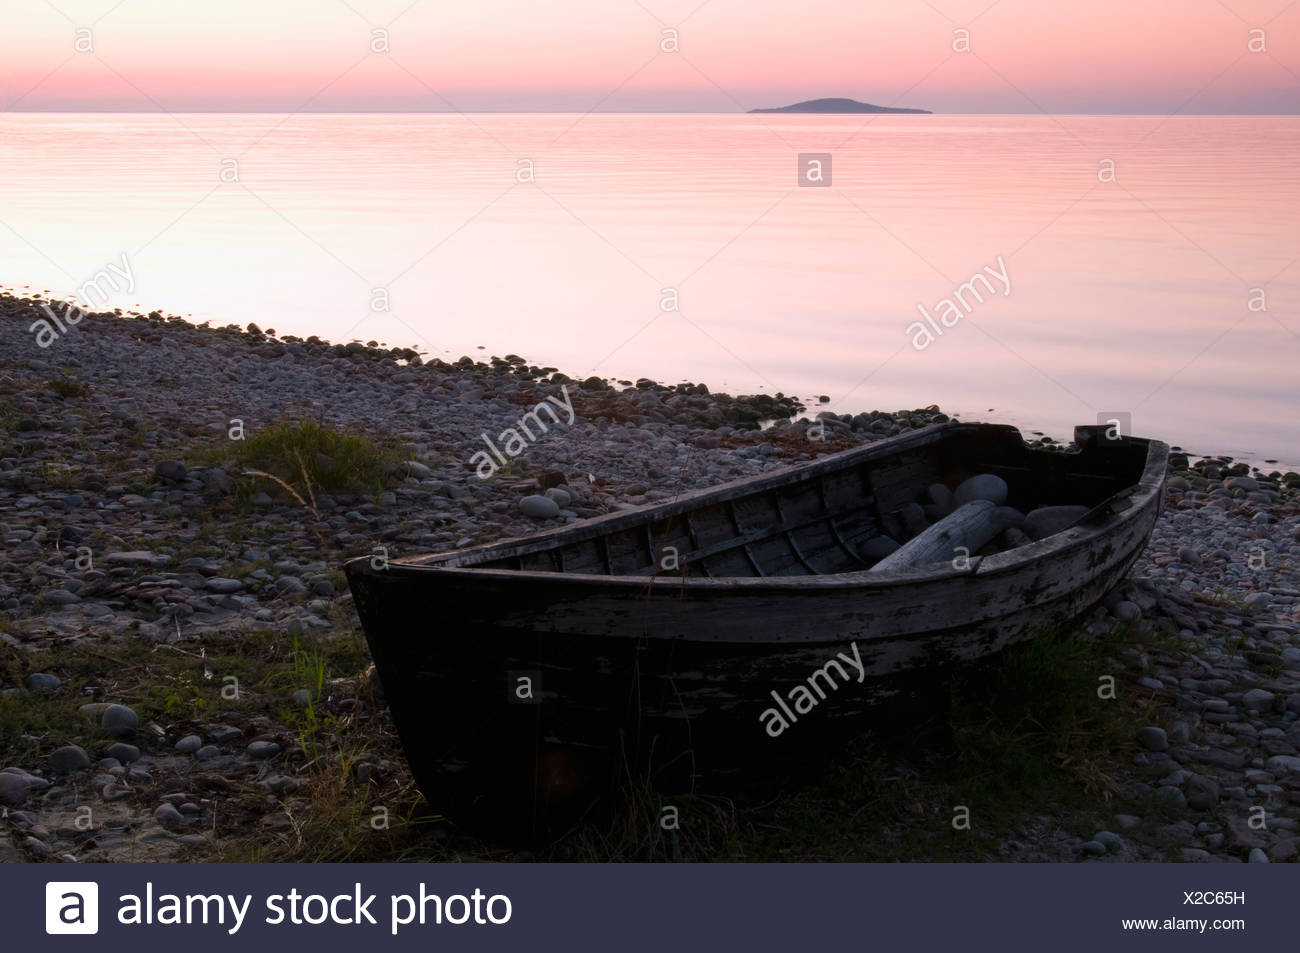 Row boat on shore at sunset - Stock Image